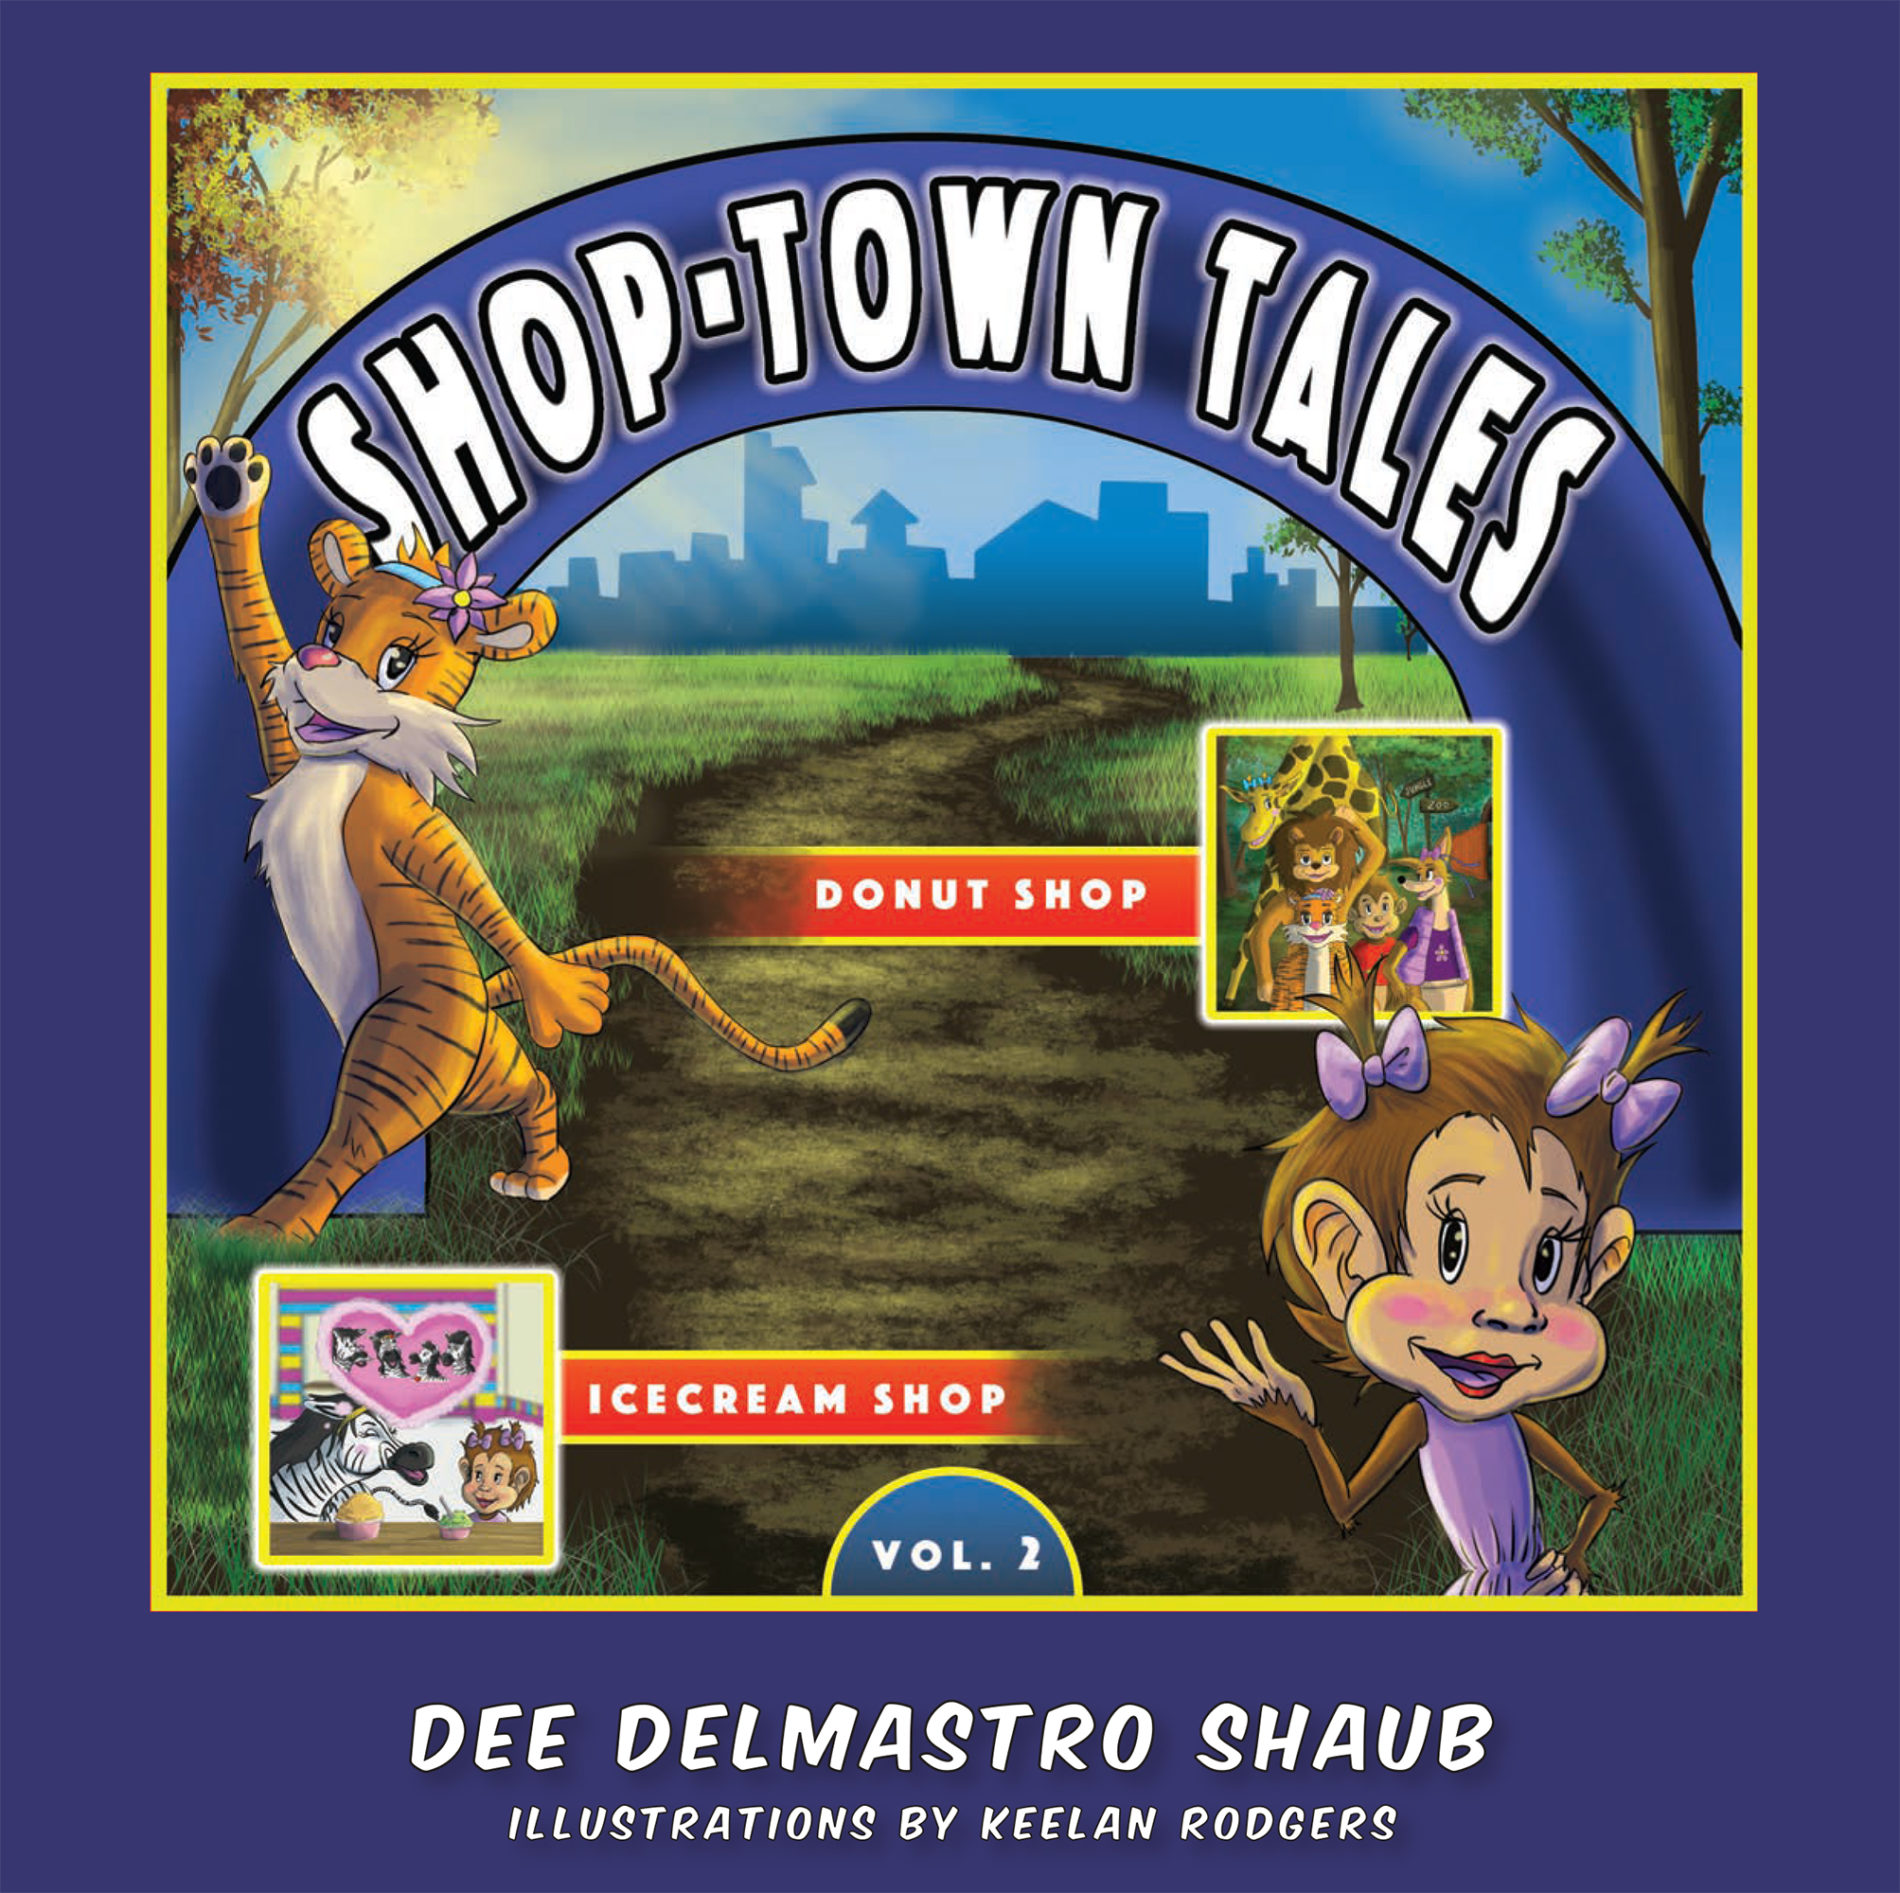 Shop-Town Tales: Volume 2 Image